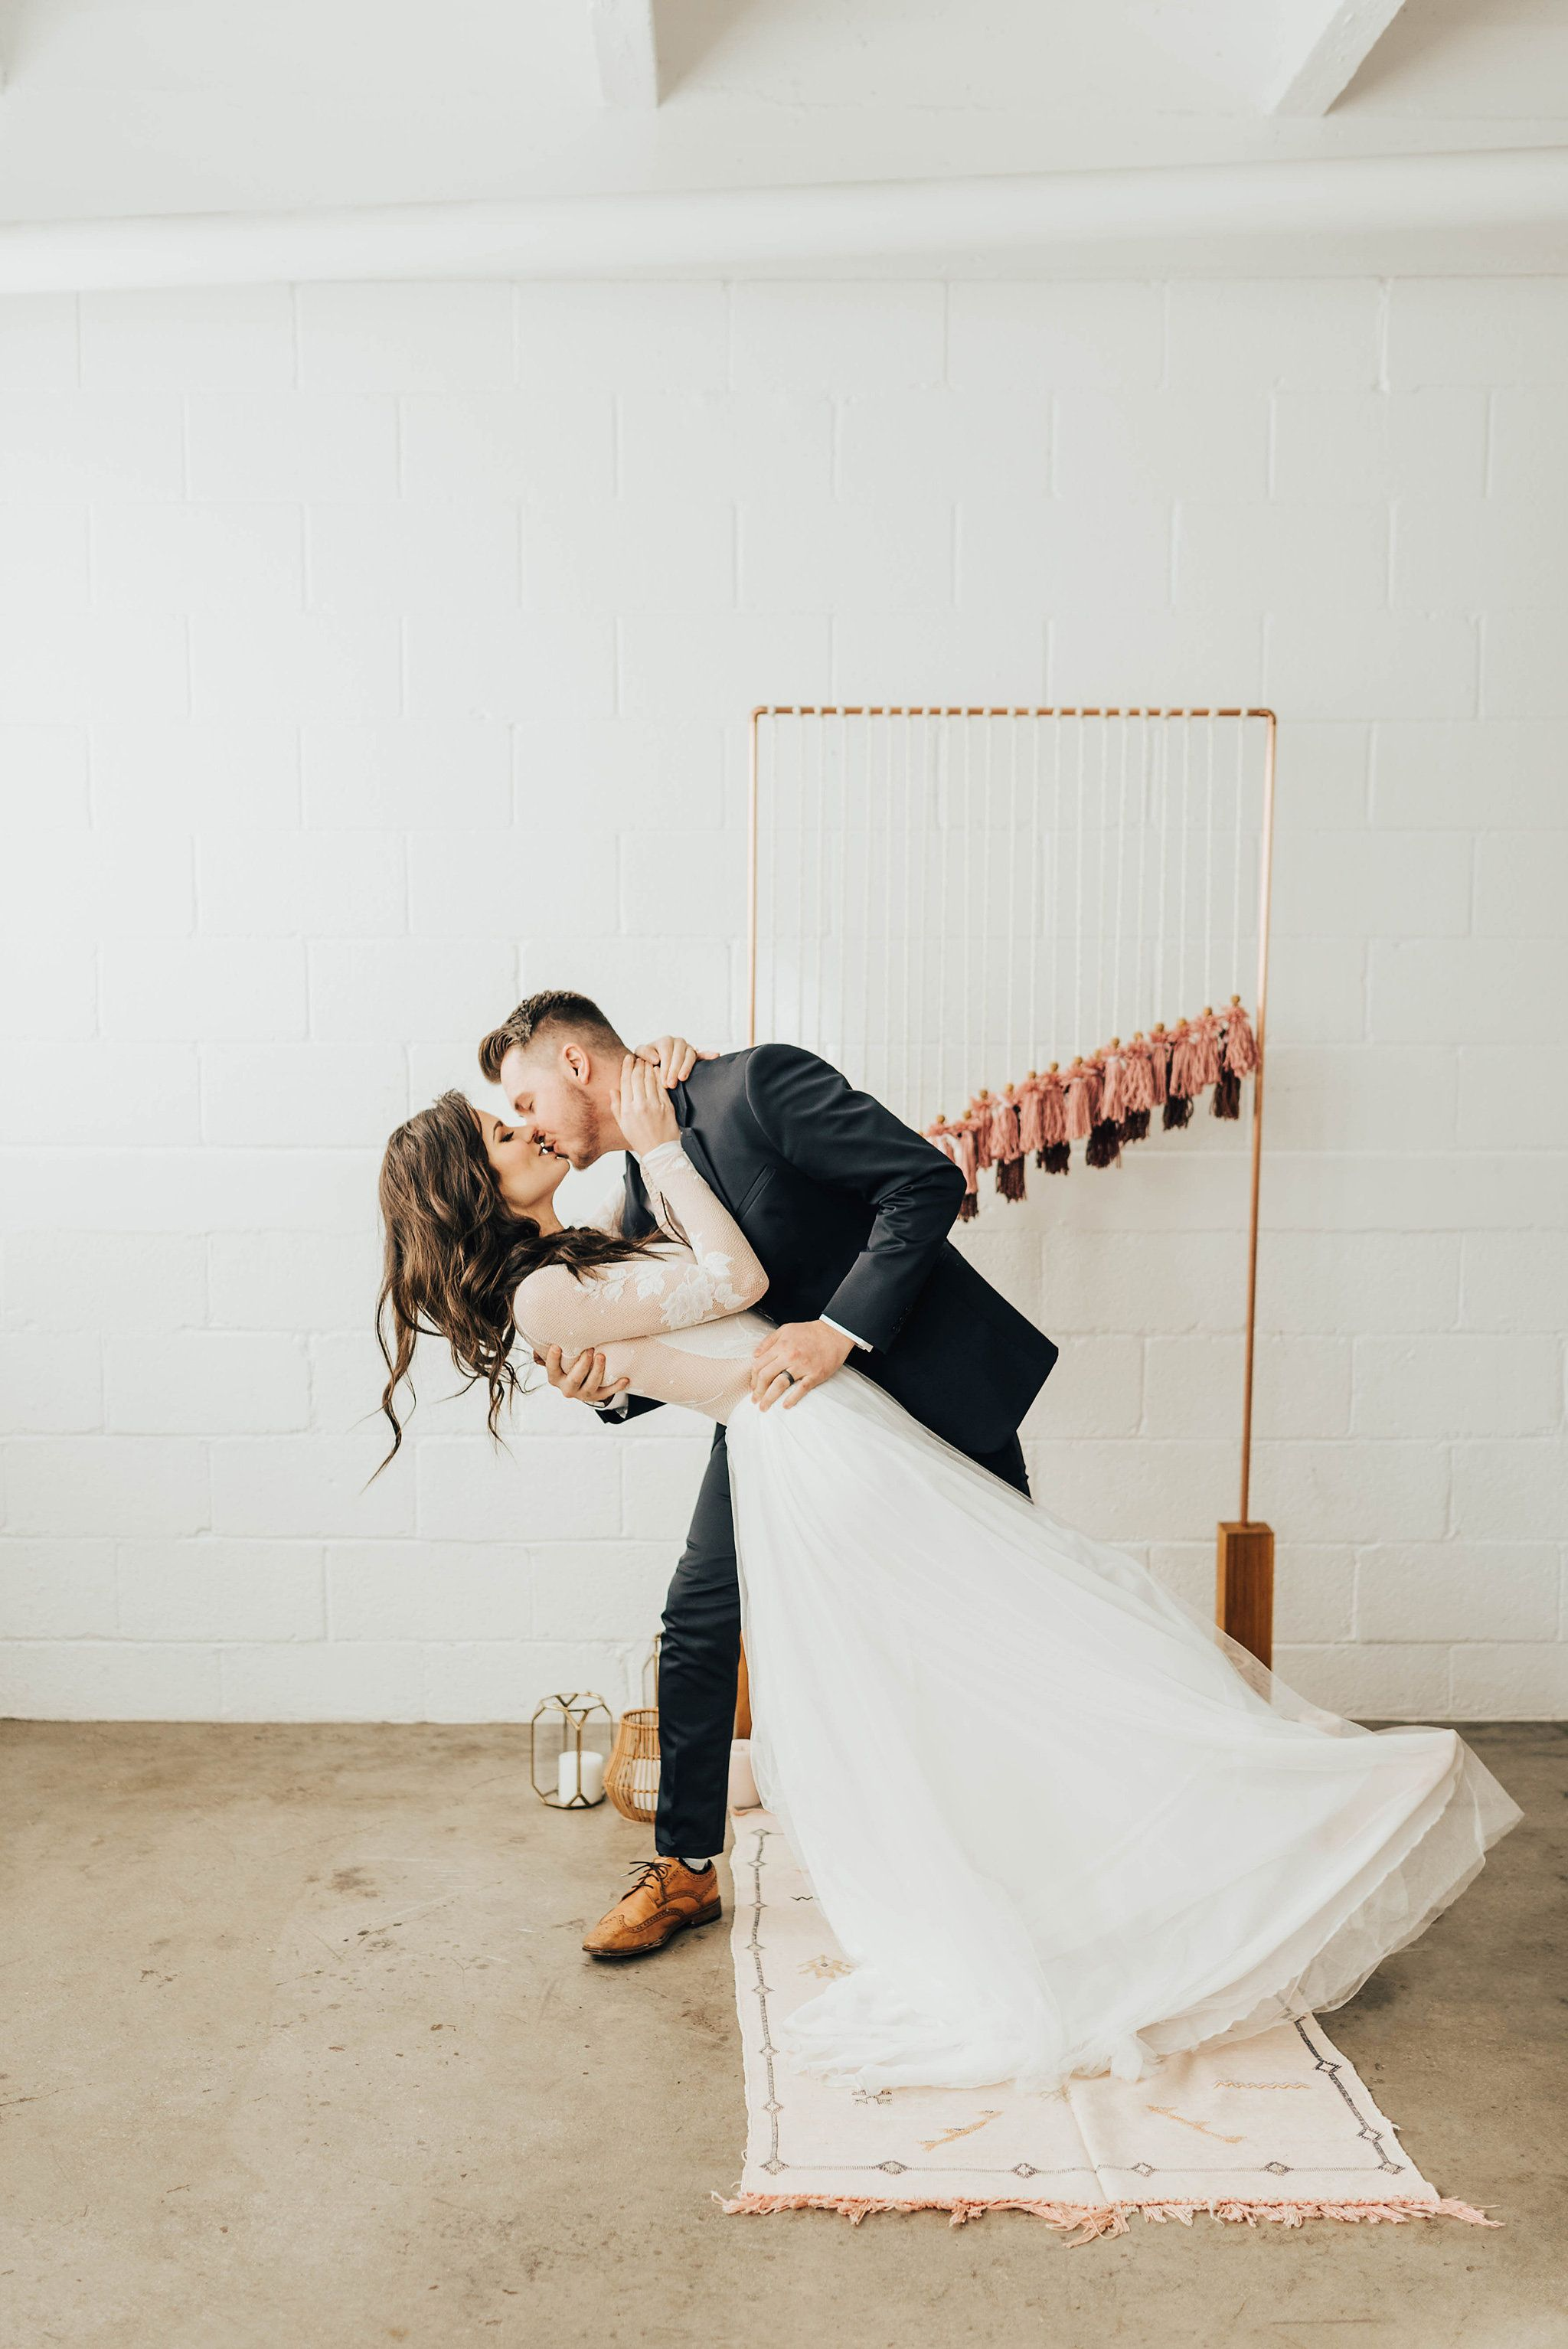 abae5efd4 Divine styled photo shoot by Peyton Lind featuring our Keira dress. Shop  all the Wear Your Love wedding dresses at our online boutique.